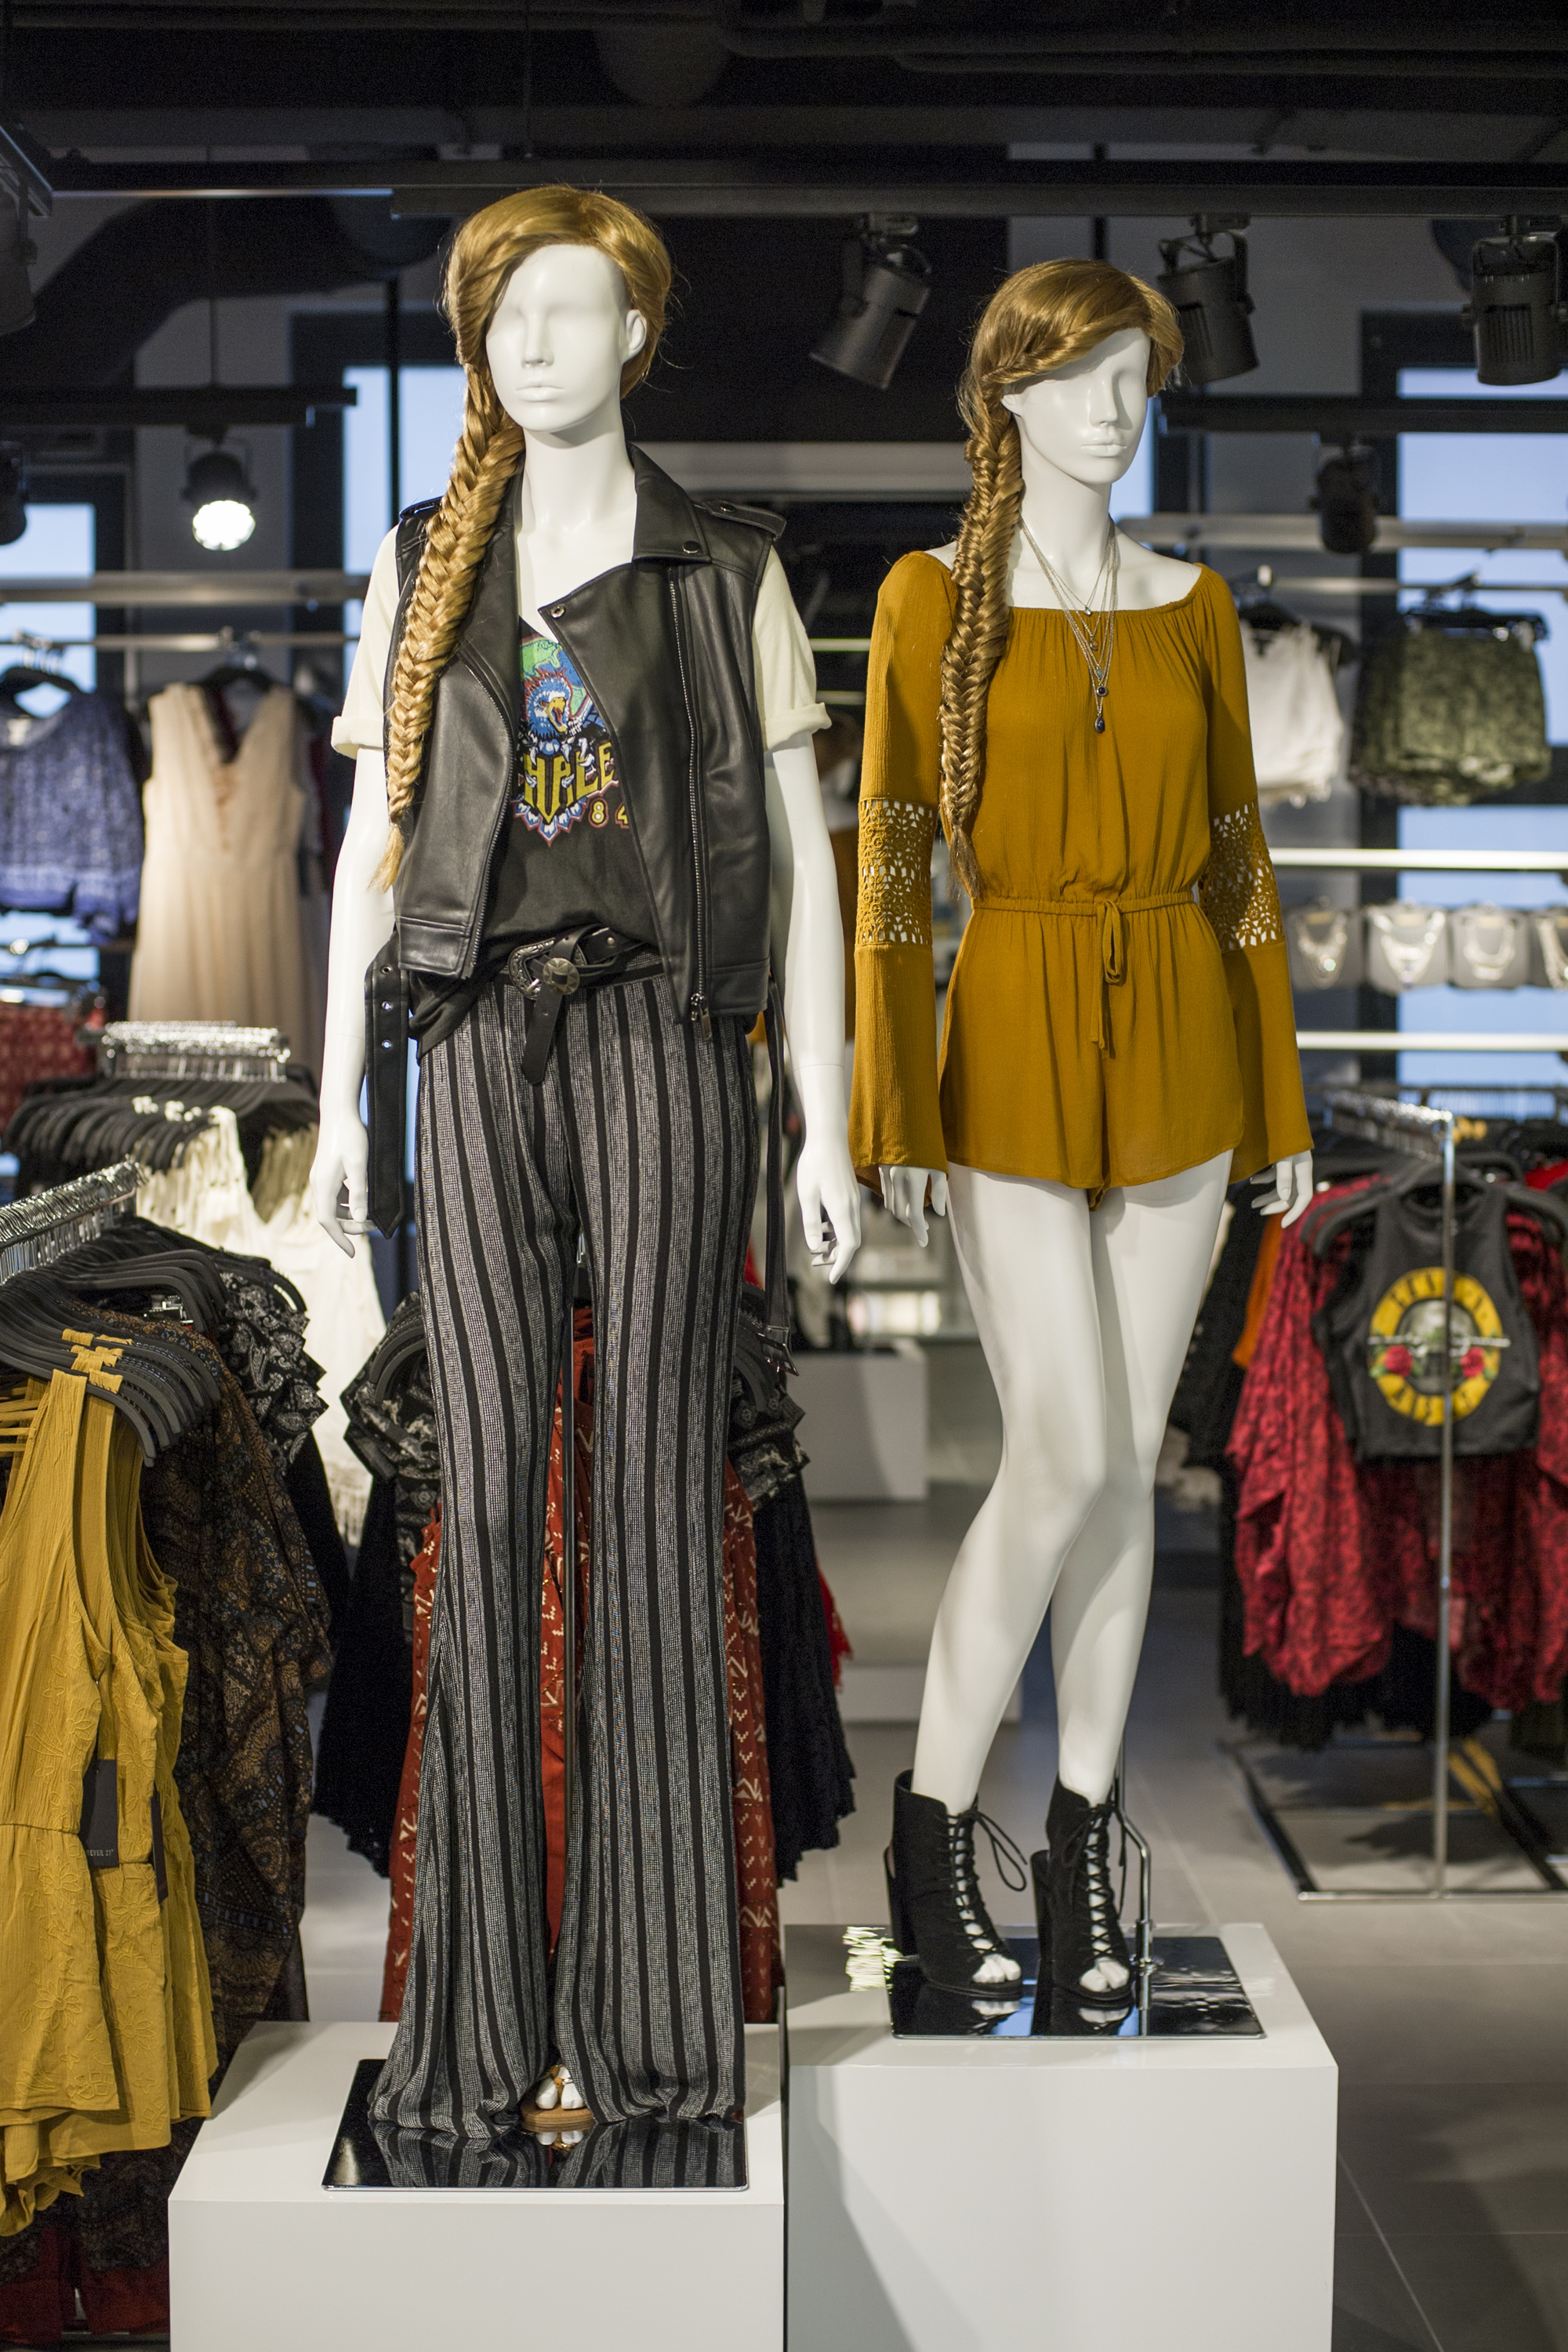 Forever 21 Store Opening in Dortmund | How I met my outfit by Dana Lohmüller